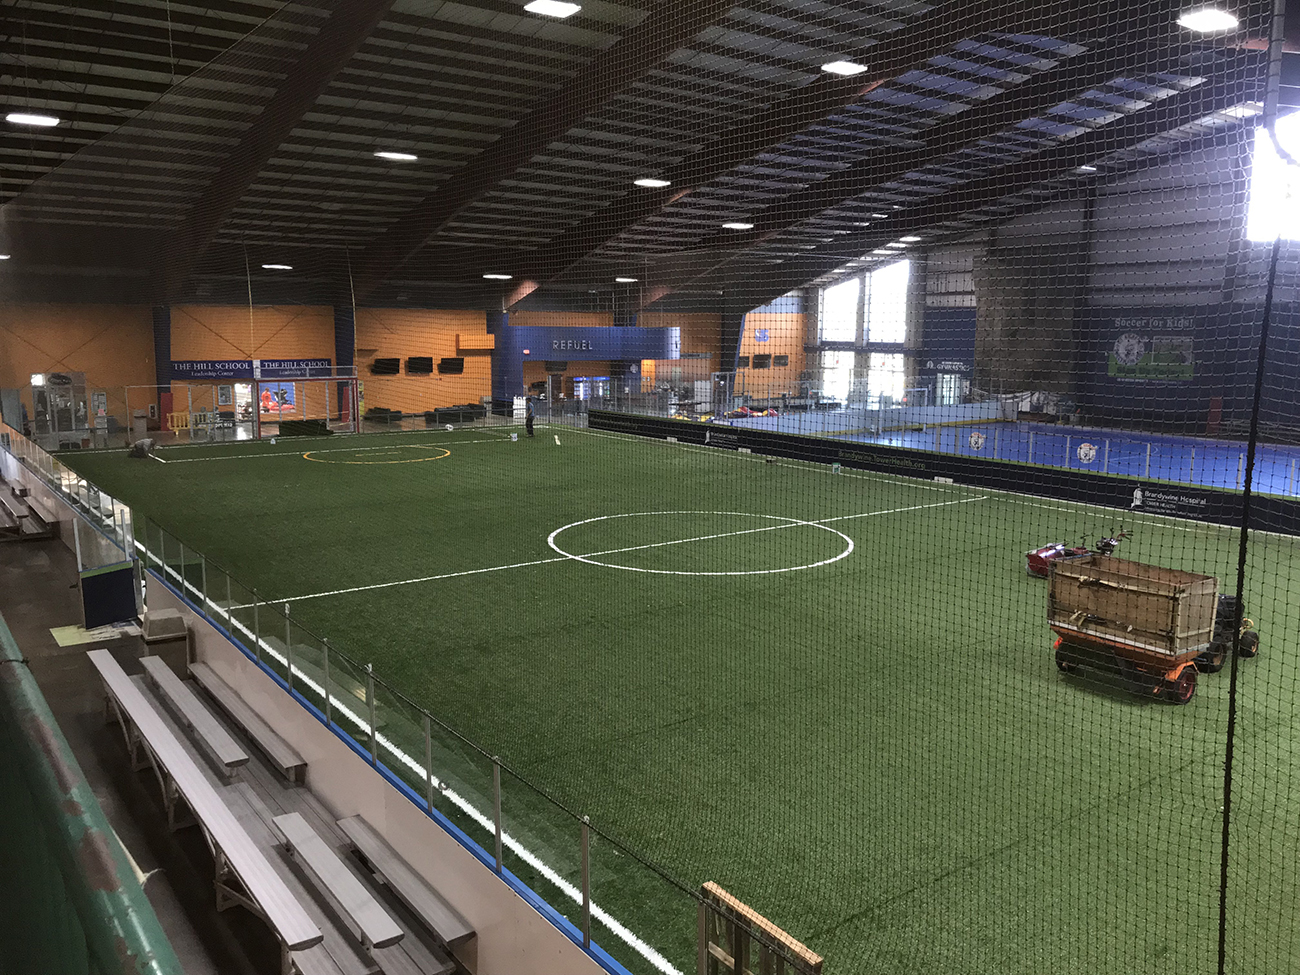 USTC Indoor Artificial Turf